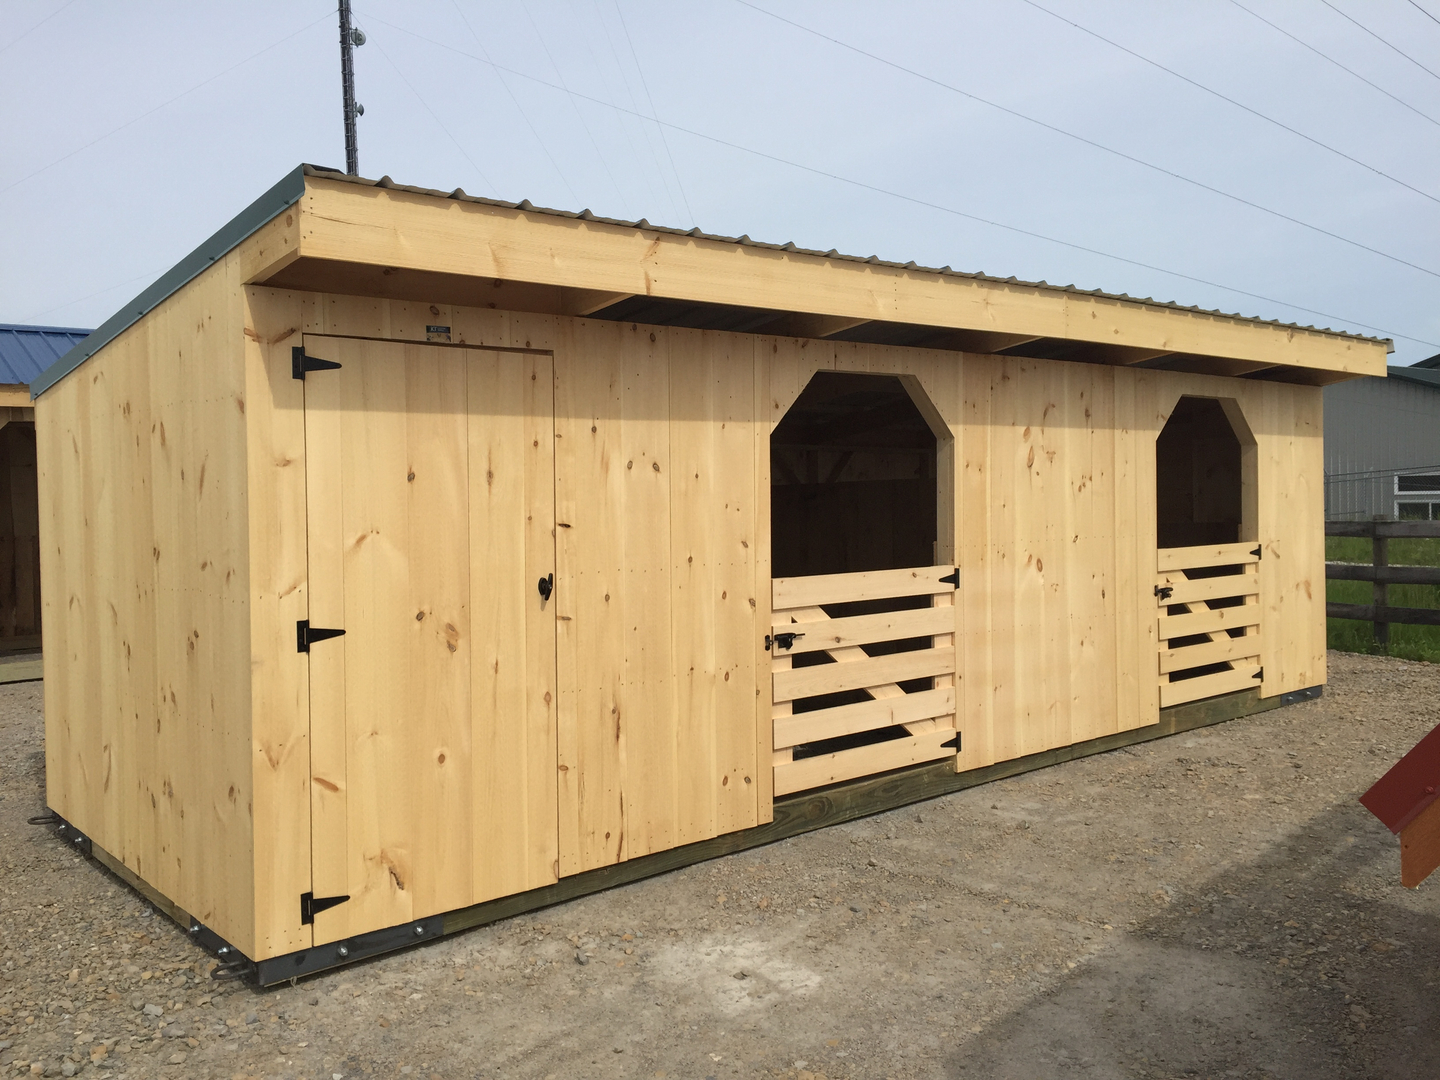 Goat Sheds - Mini Barns and Shed Construction - Millersburg Ohio